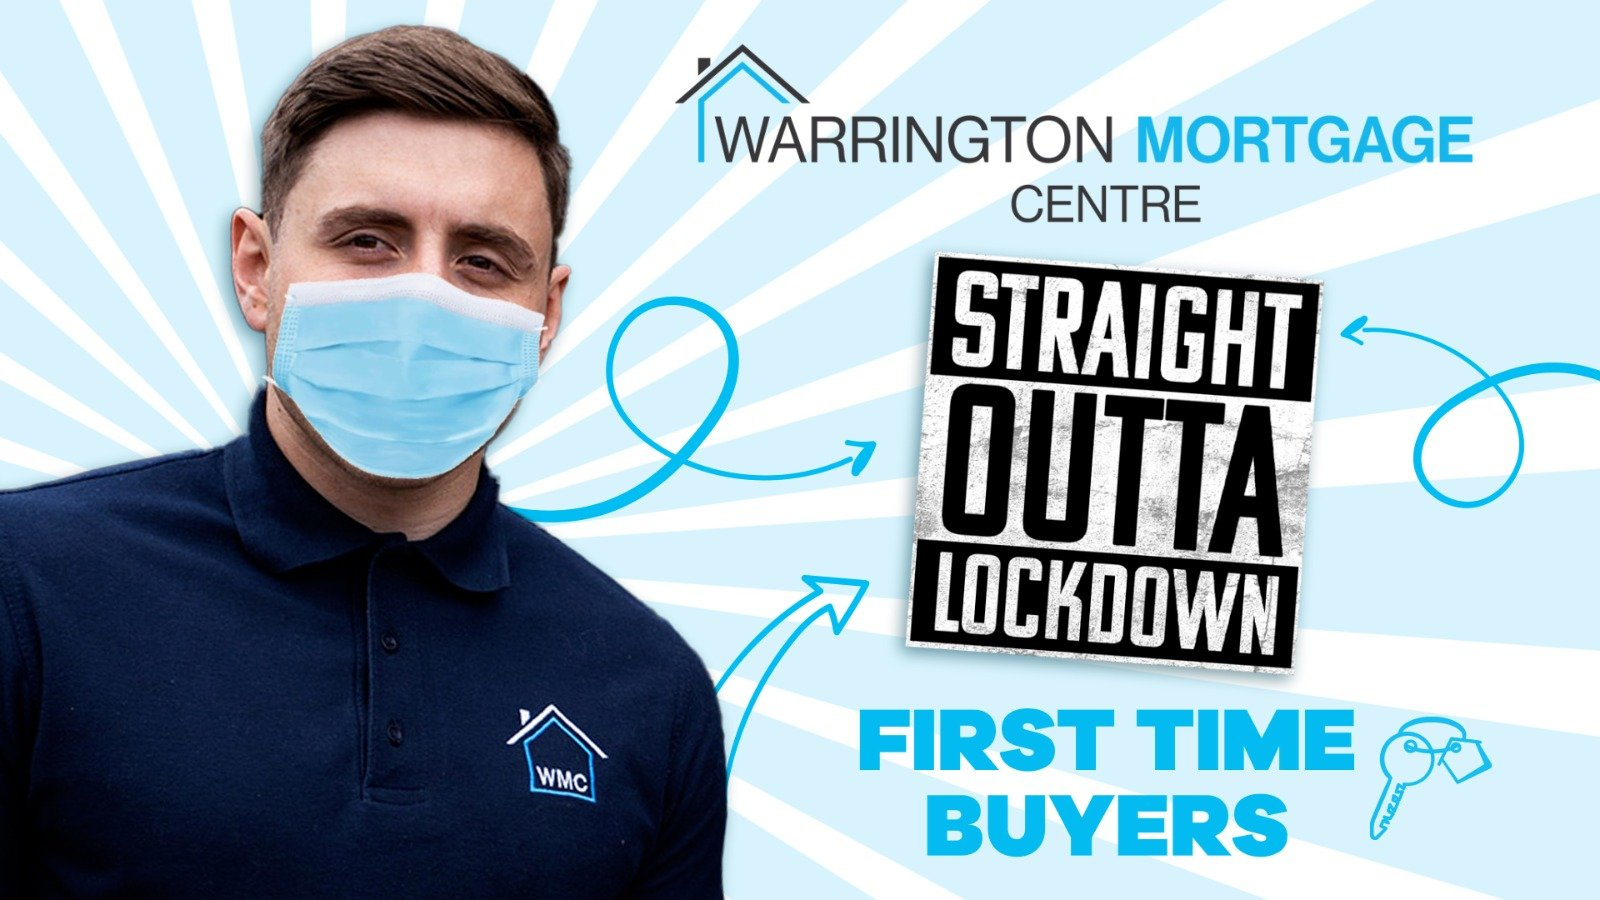 First Time Buyer Straight Outta Lockdown?